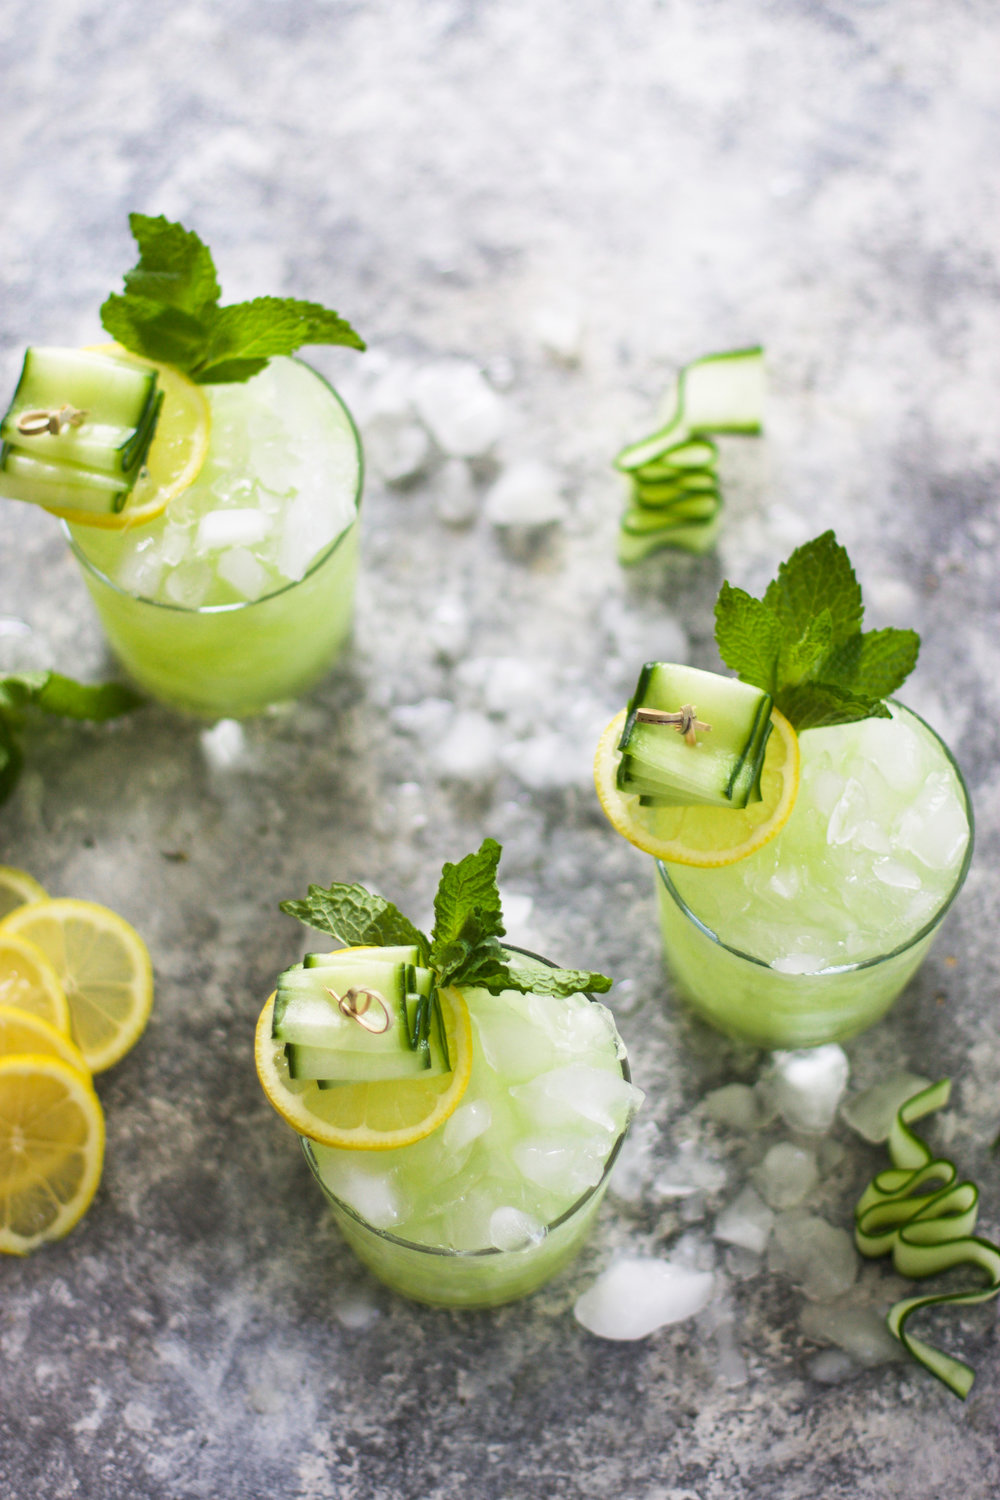 The Boozy Green Elixir: My Diary of Us